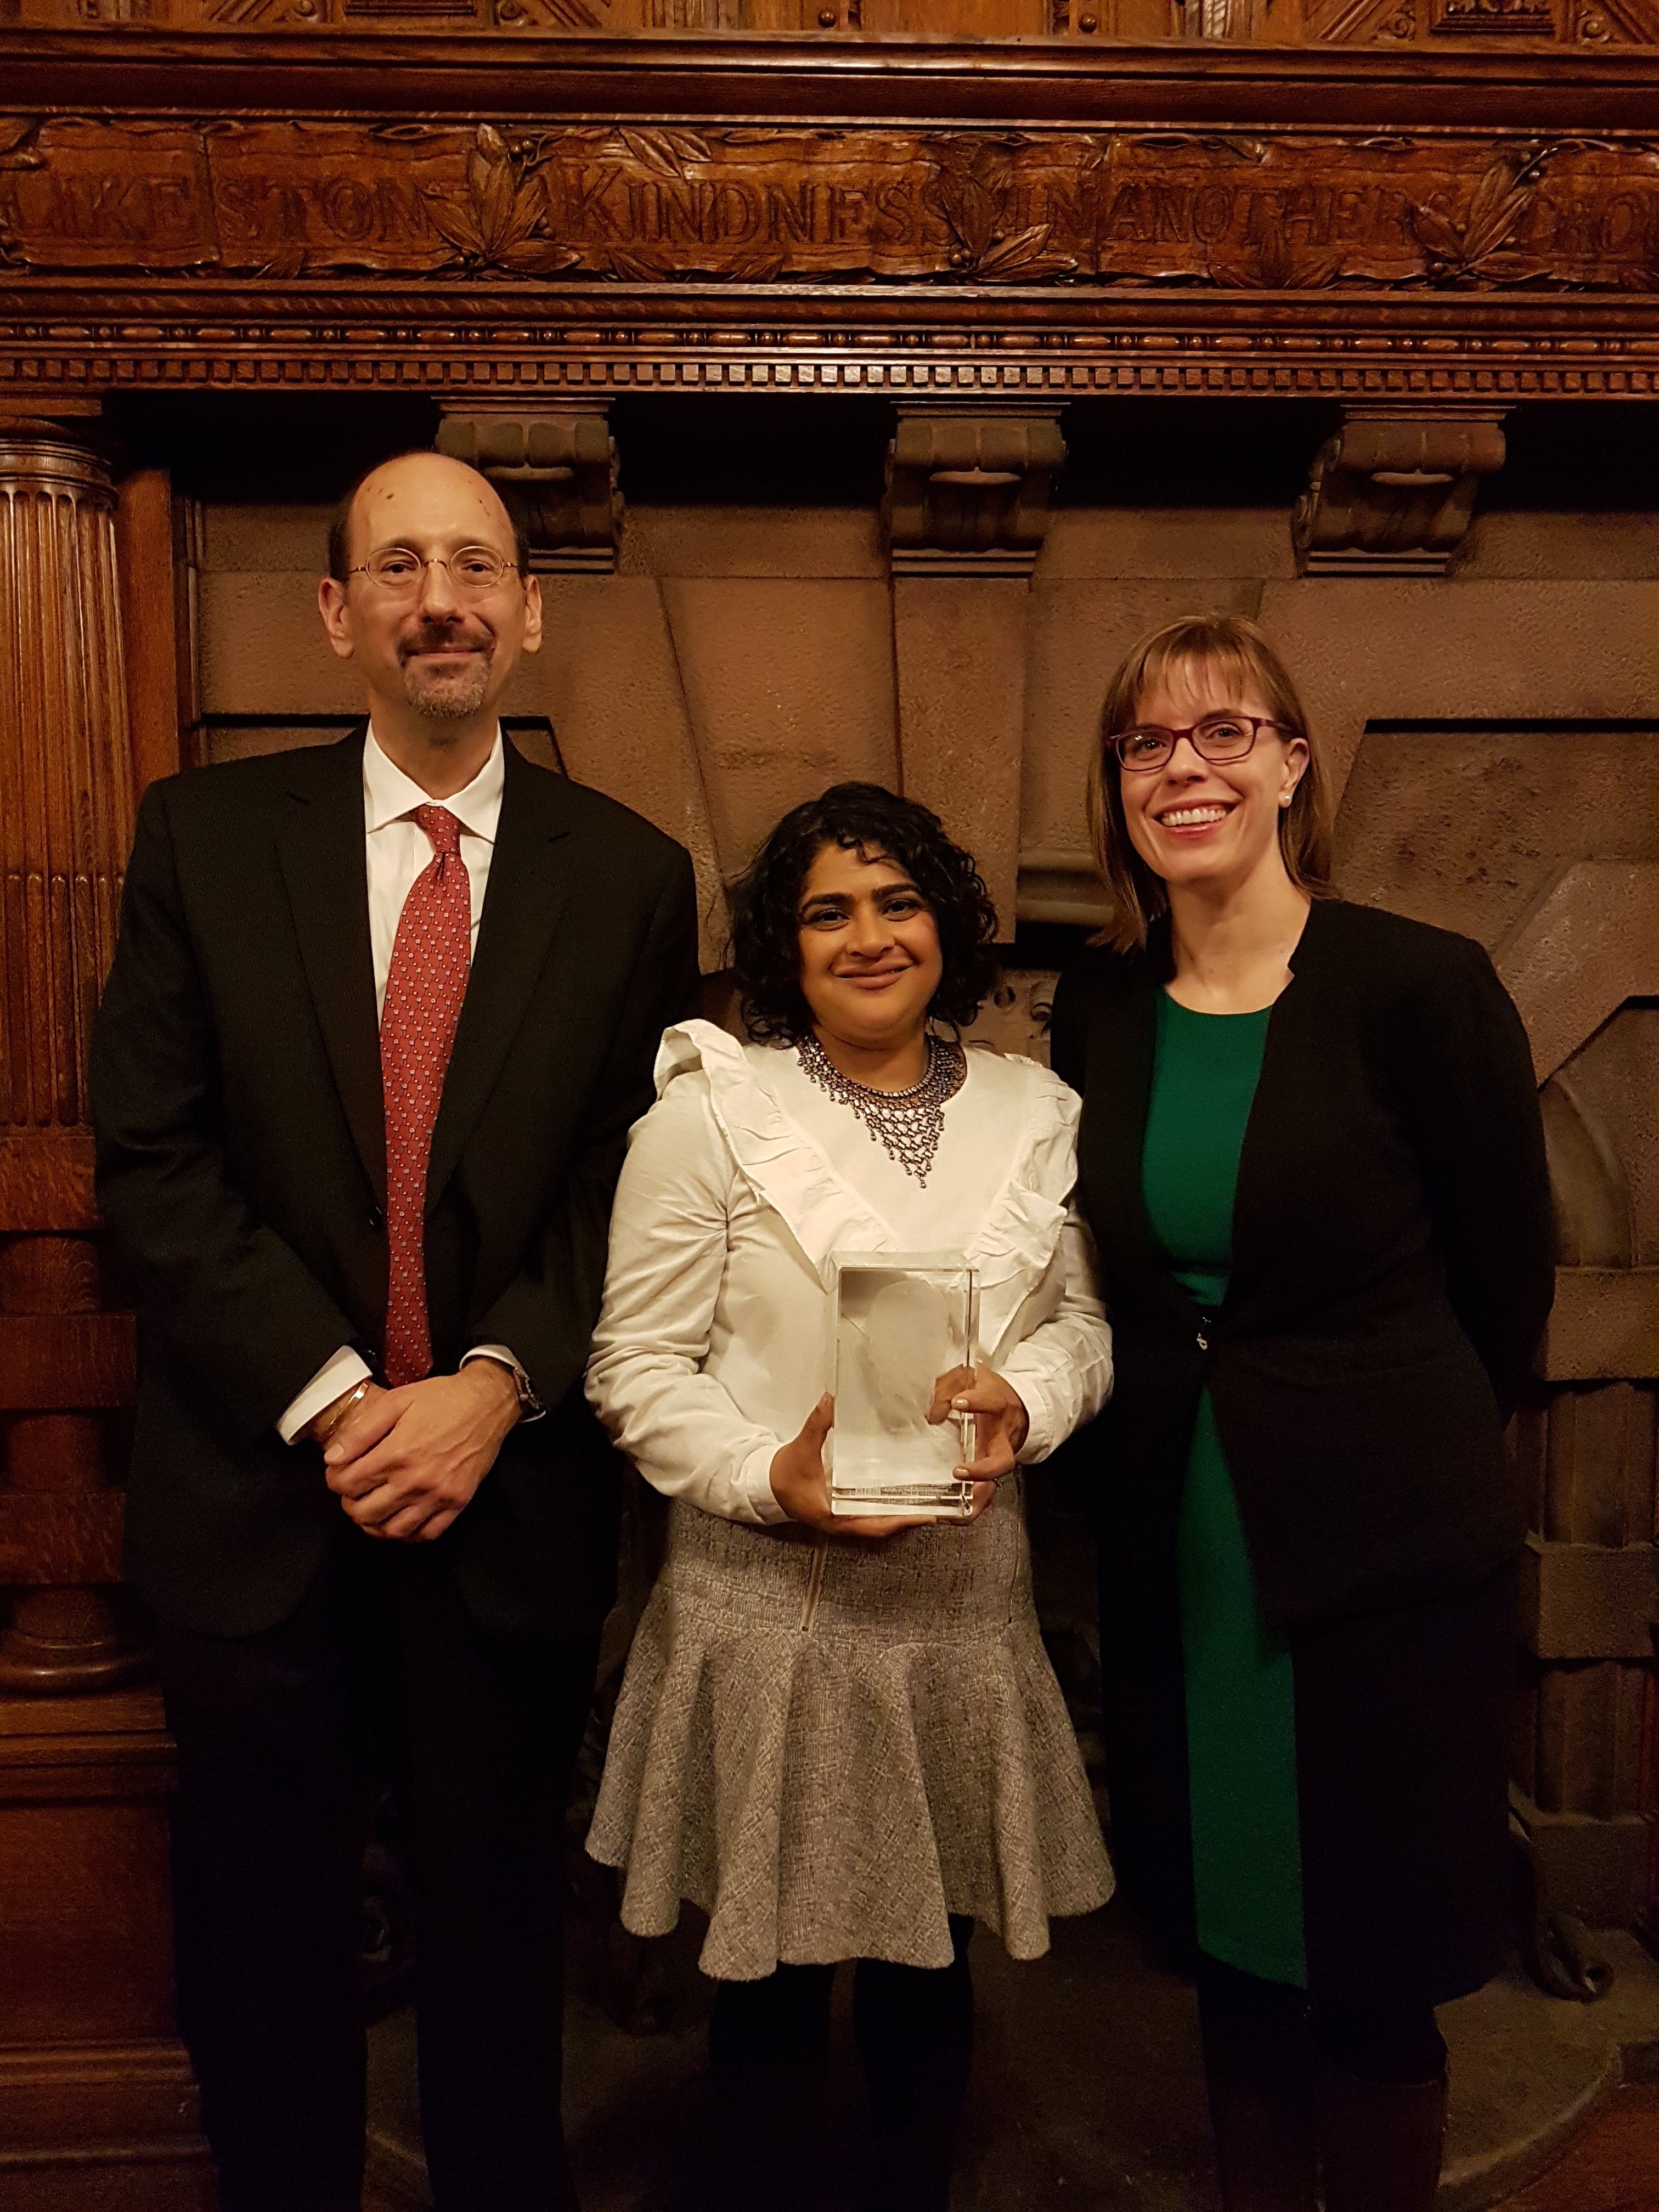 Photo Left to Right: Dr. Ivan Zinger, Renu Mandhane, and Marie-France Kingsley